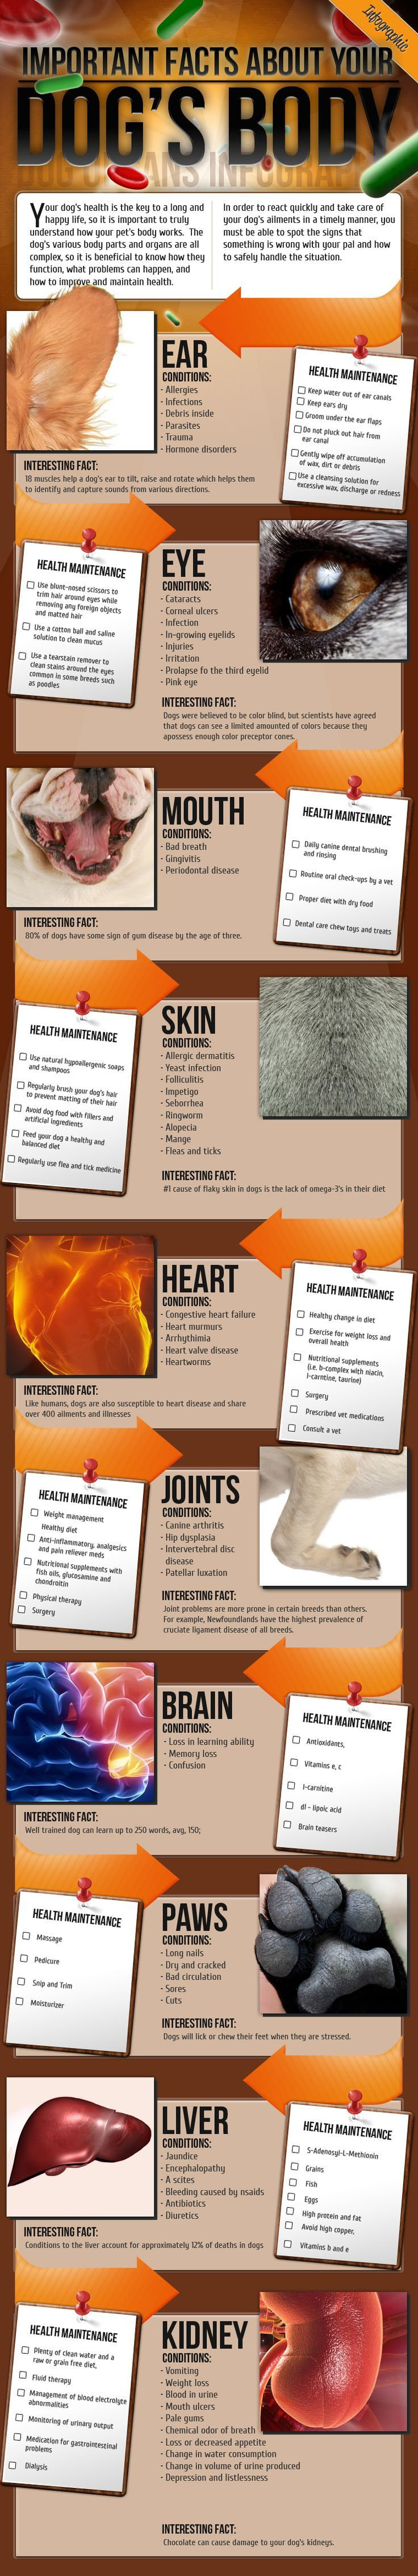 Tips about your dogs body infographic  http://gardenreboot.blogspot.com/2013/10/dog-body-infographic.html